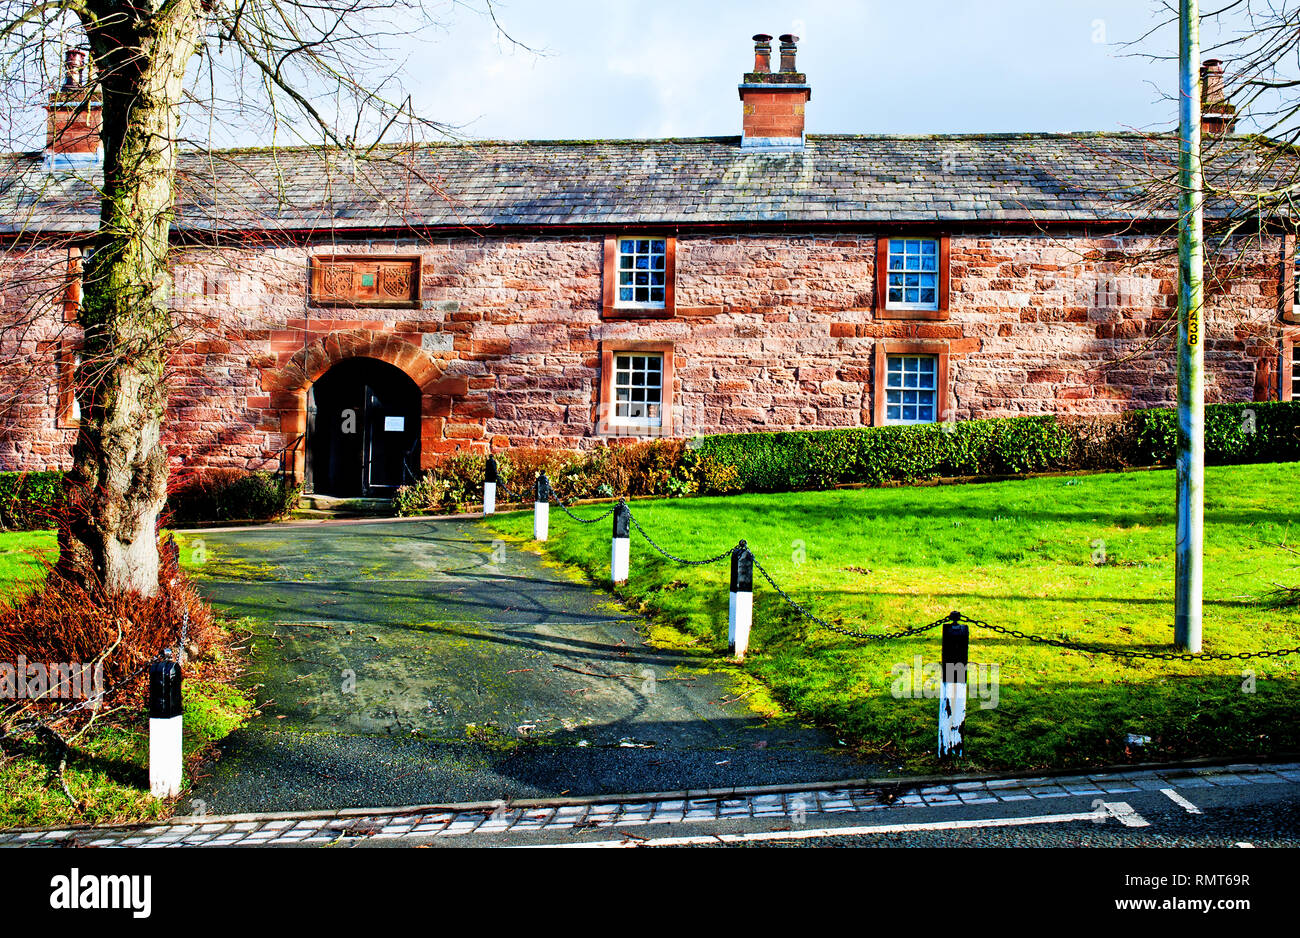 St Annes Hospital and Alms Houses, Boroughgate, Appleby in Westmorland, Cumbria, England - Stock Image